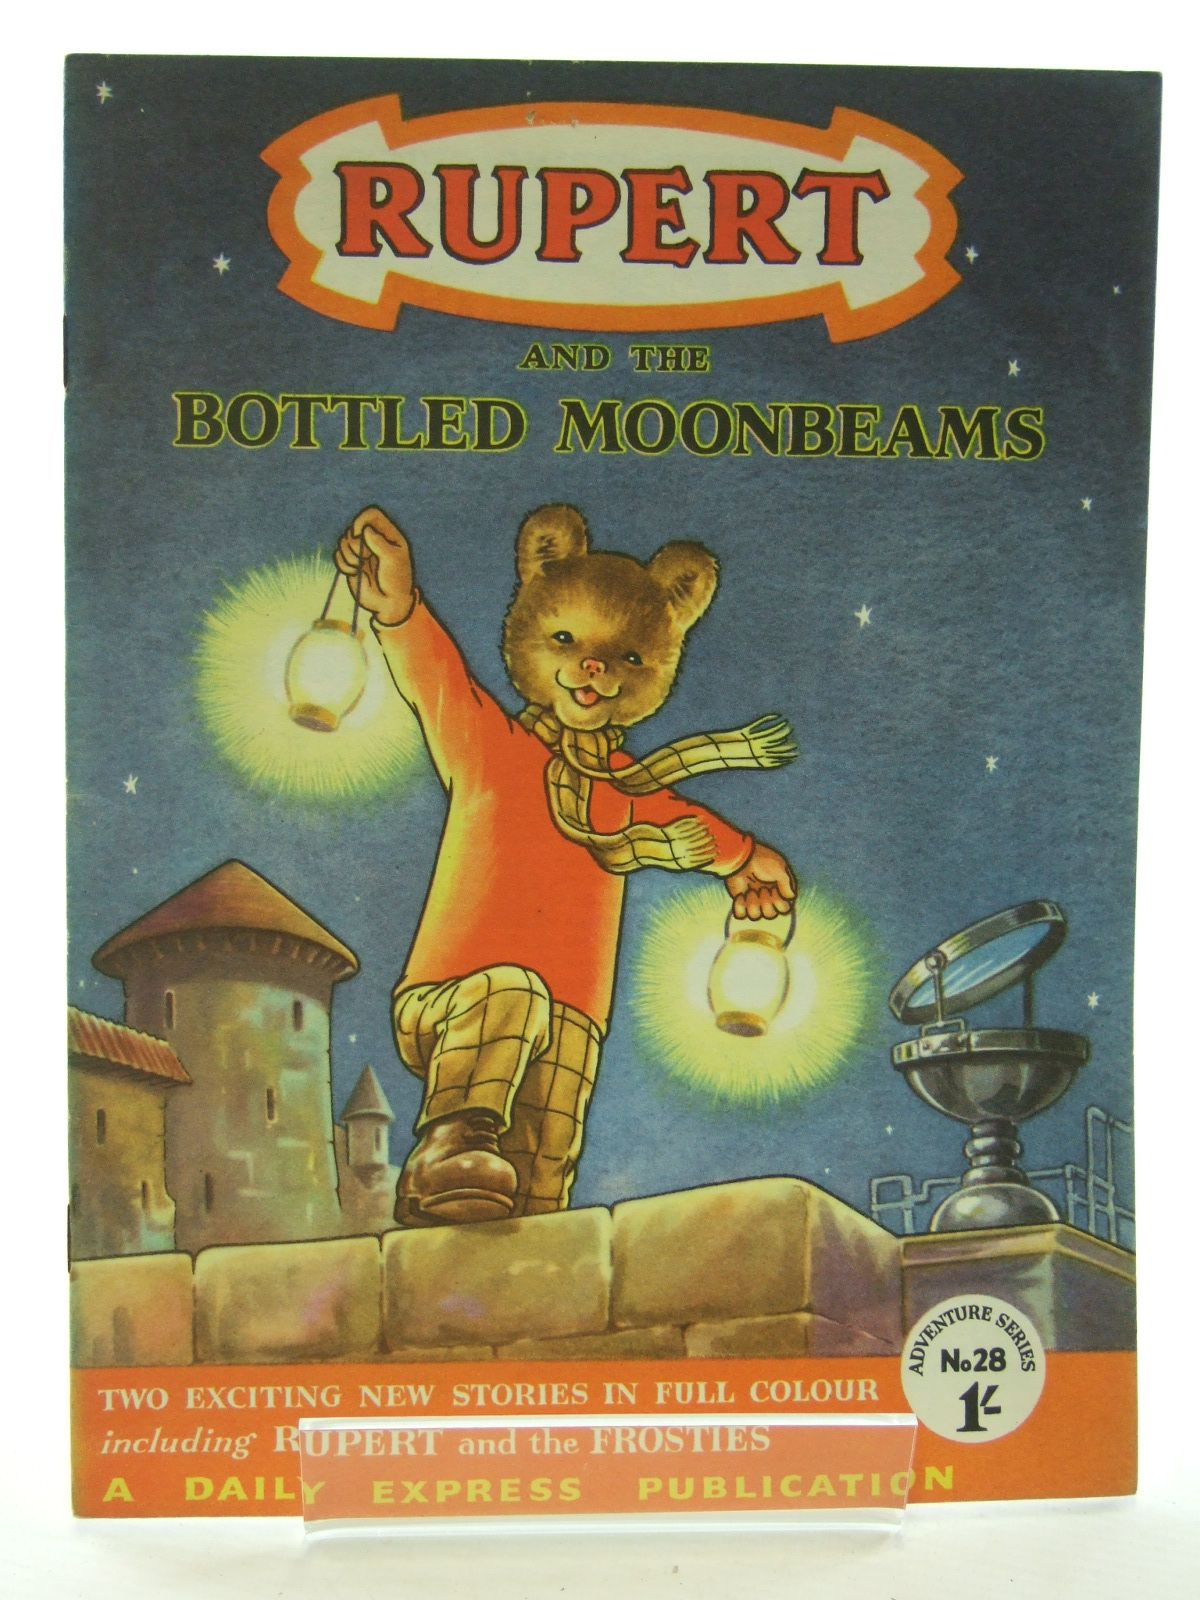 Photo of RUPERT ADVENTURE SERIES No. 28 - RUPERT AND THE BOTTLED MOONBEAMS written by Bestall, Alfred published by Daily Express (STOCK CODE: 2108727)  for sale by Stella & Rose's Books